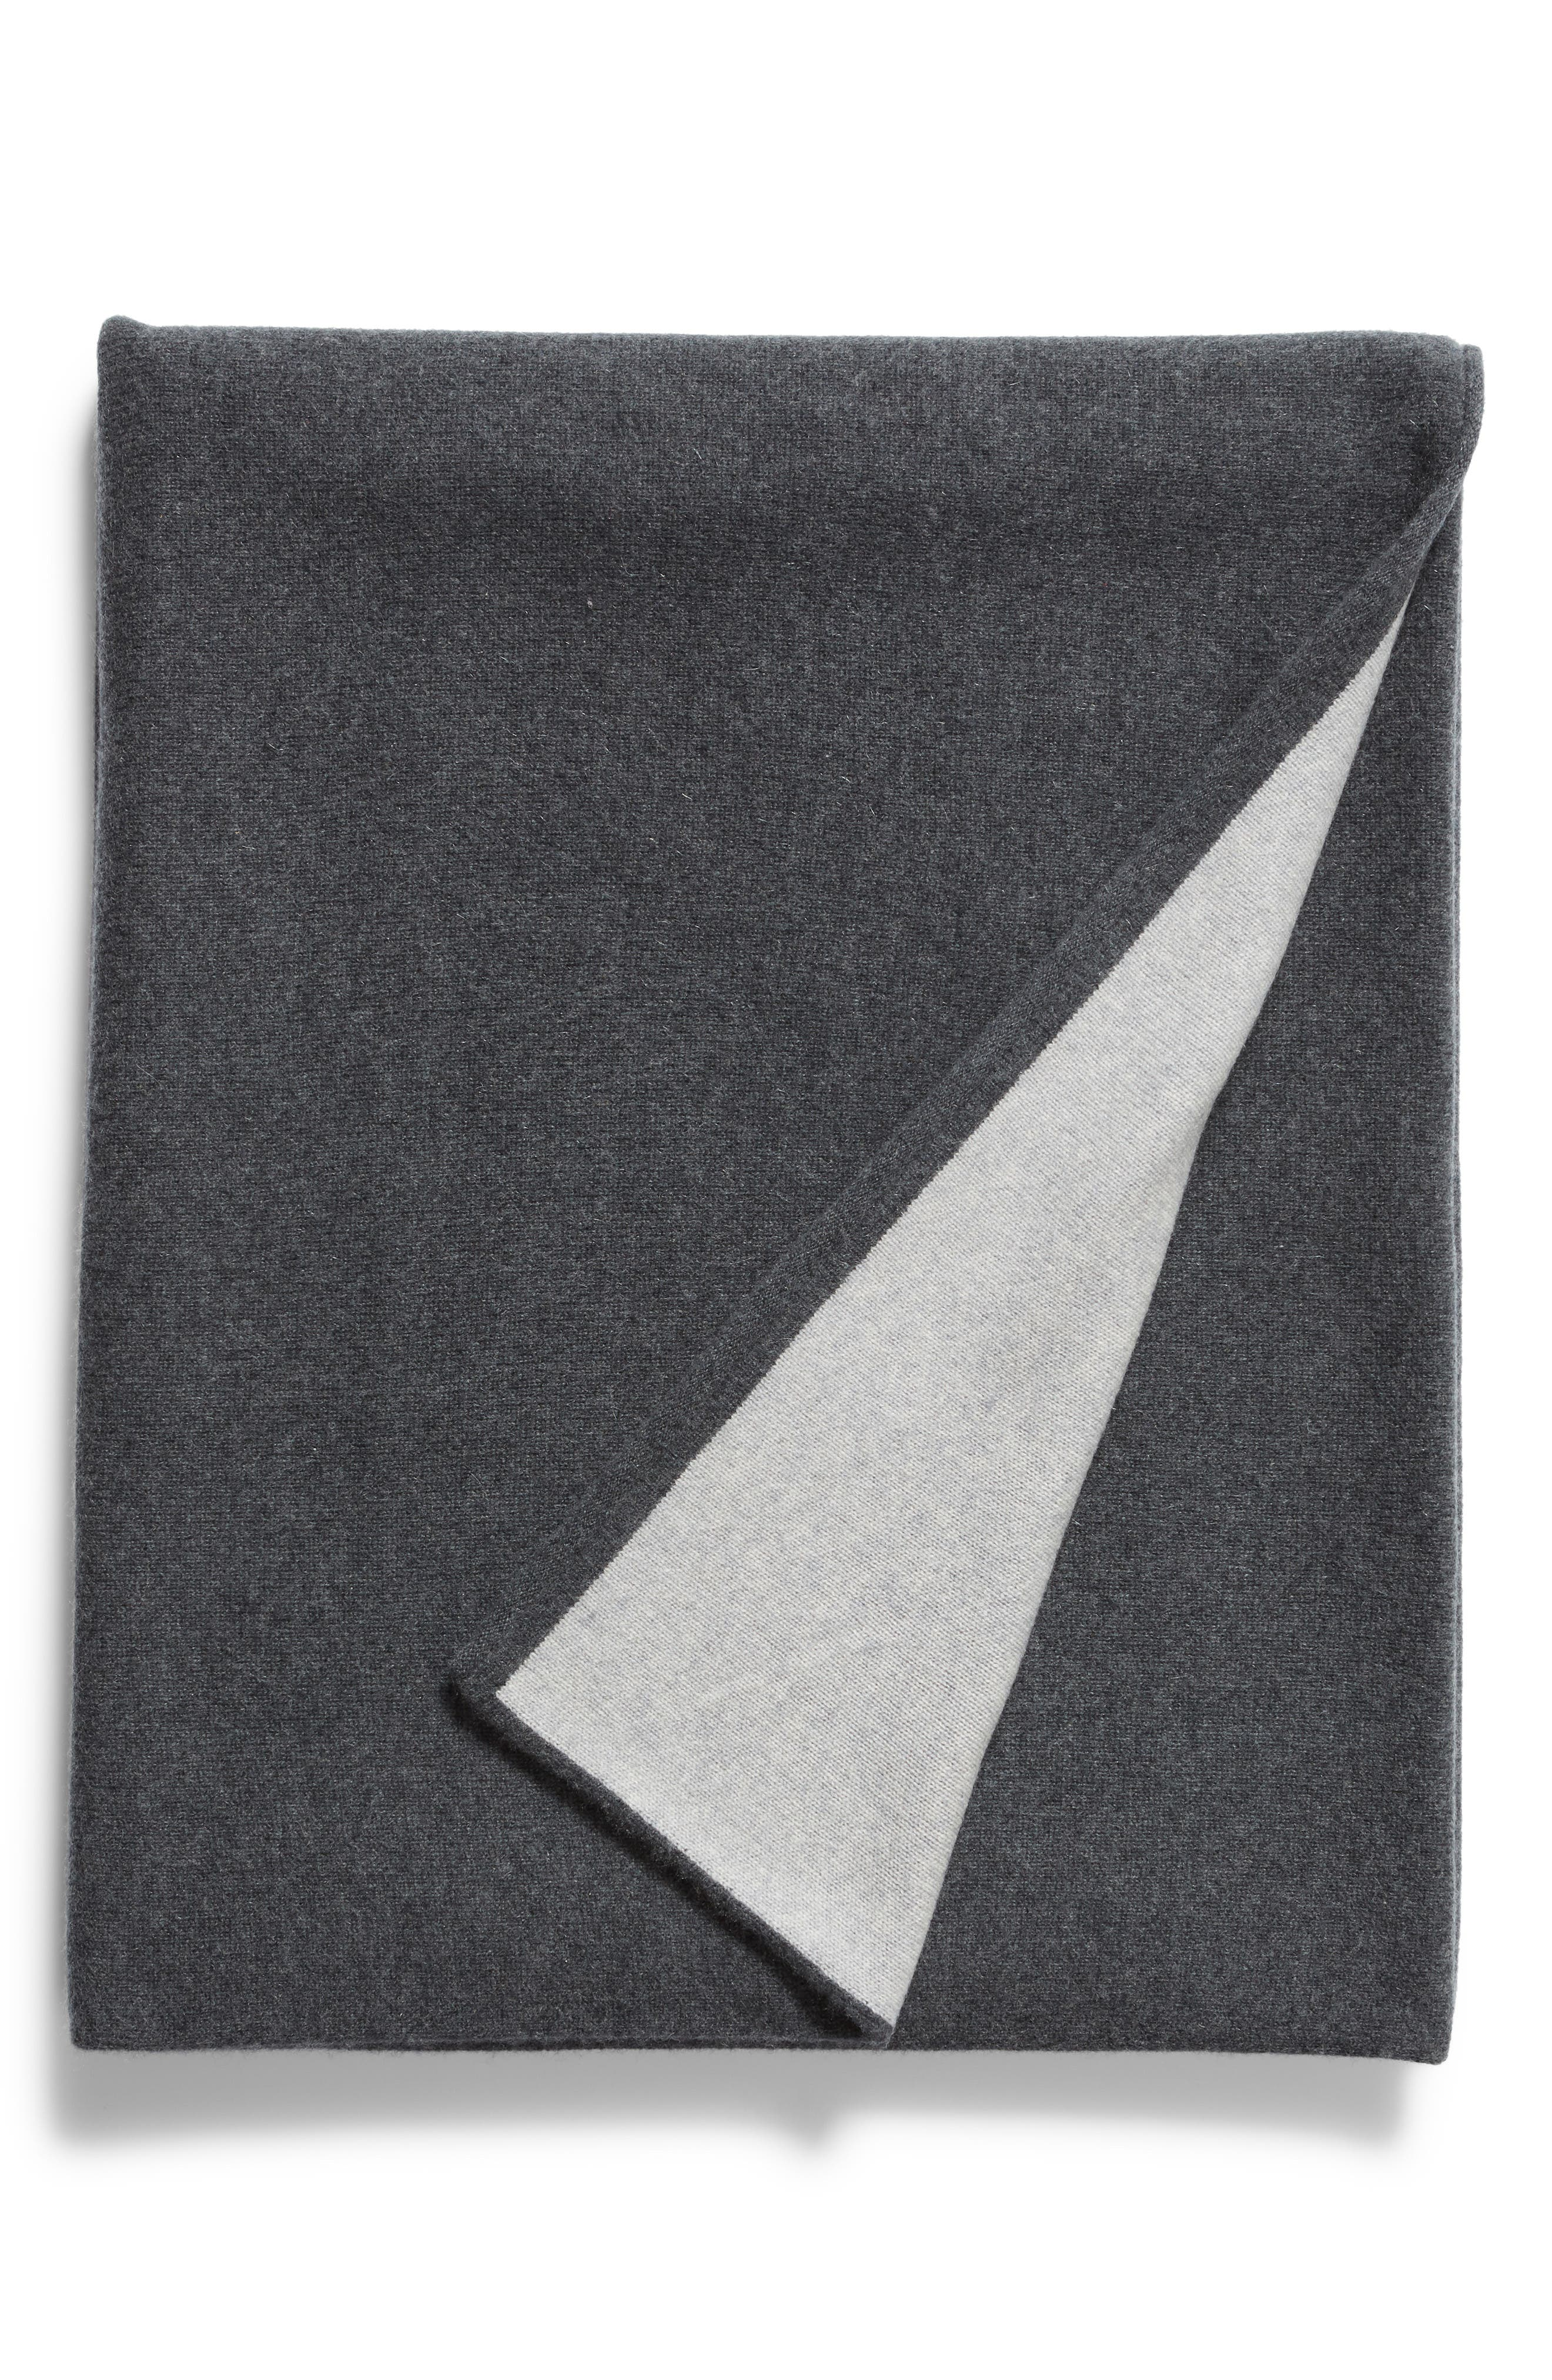 NORDSTROM SIGNATURE Double Knit Cashmere Throw, Main, color, GREY CLAY HEATHER